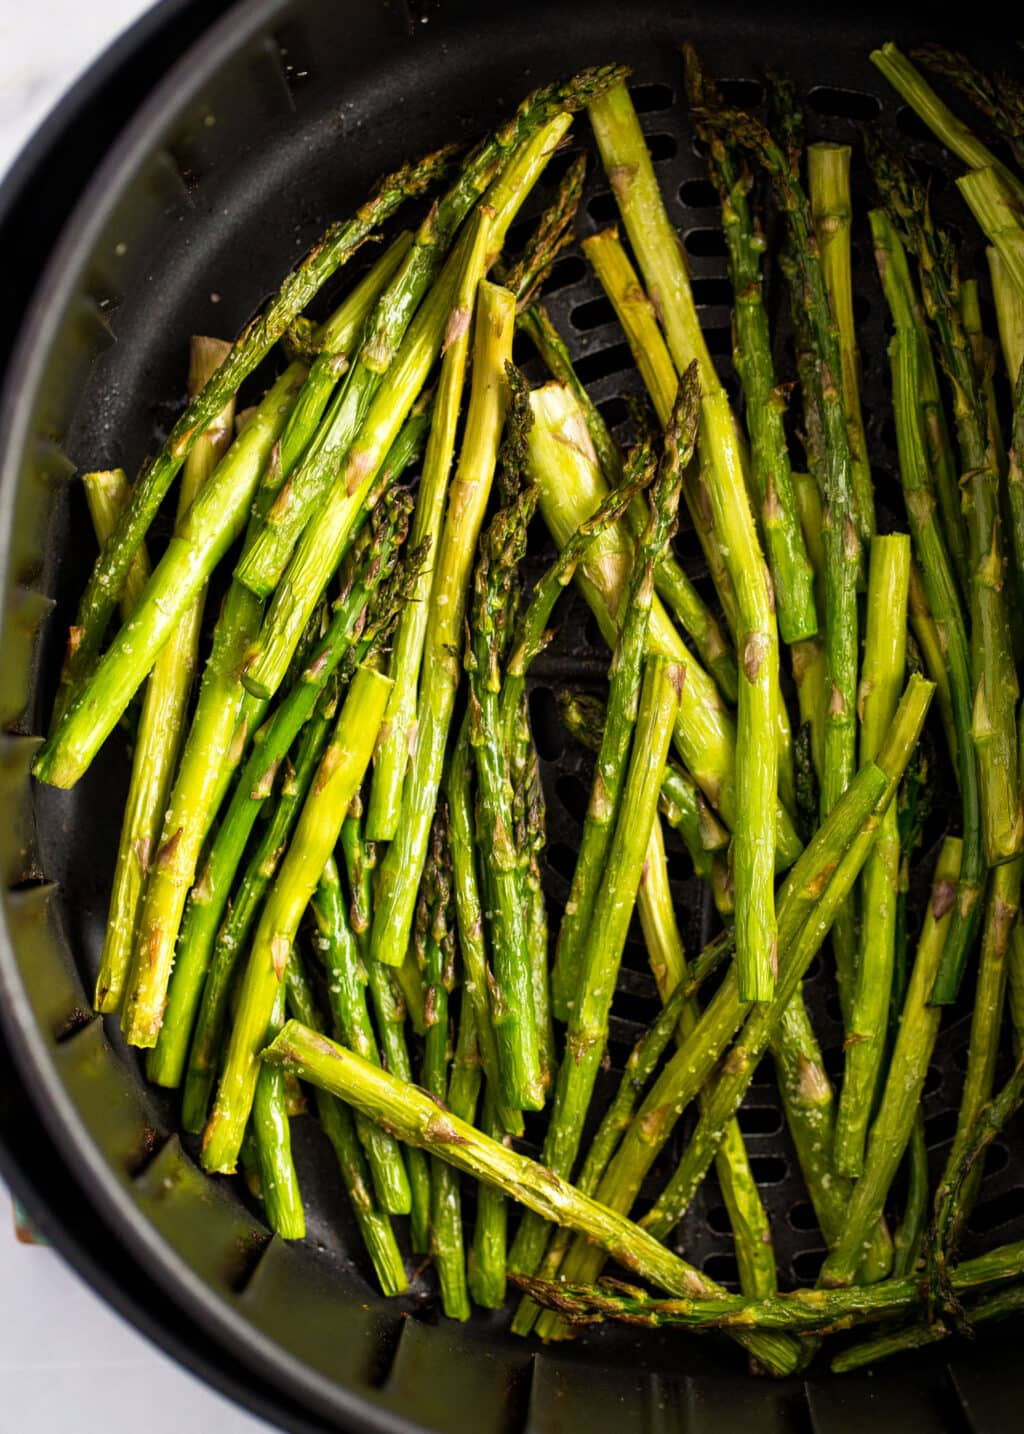 cooked asparagus in an air fryer